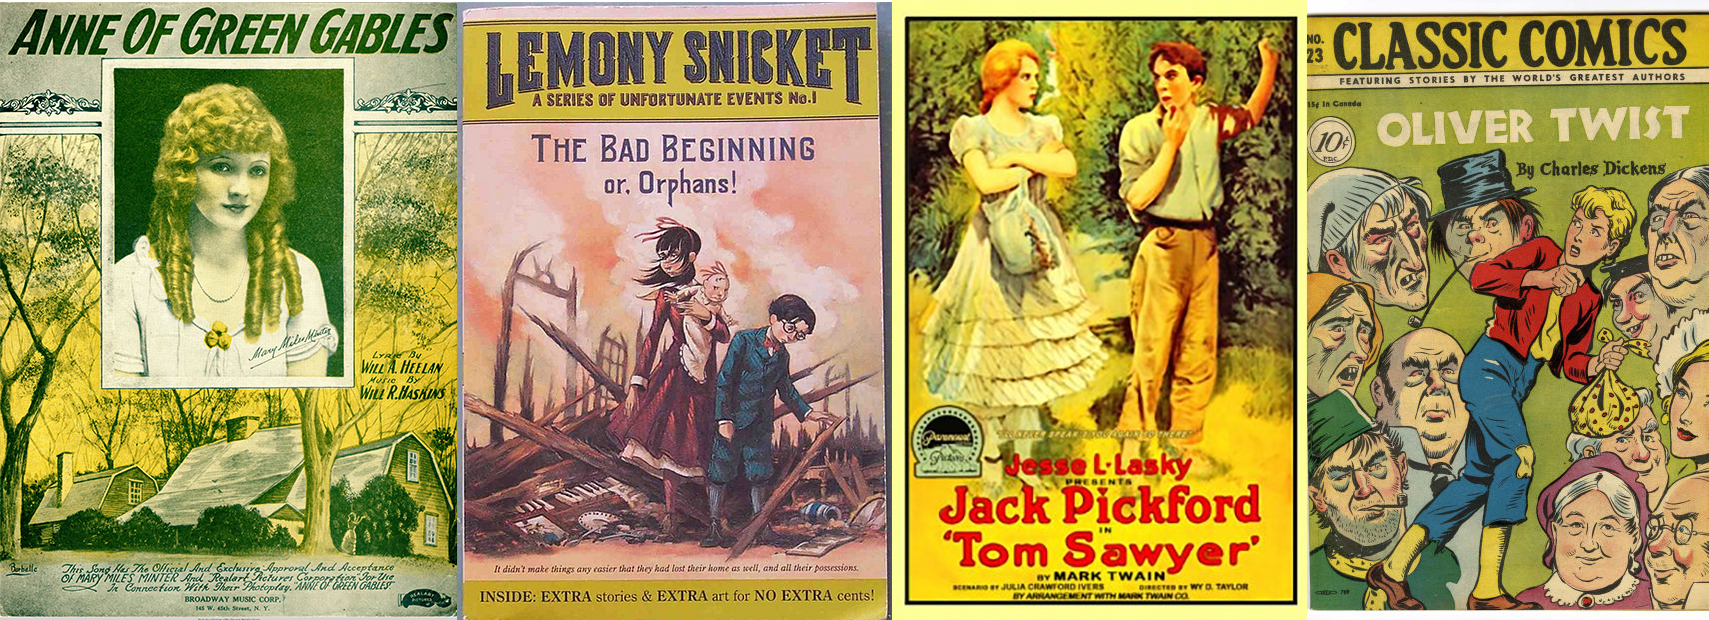 Side by side book covers of books featuring orphans. The covers include Anne of Green Gables, A Series of Unfortunate Events, Tom Sawyer, and Oliver Twist